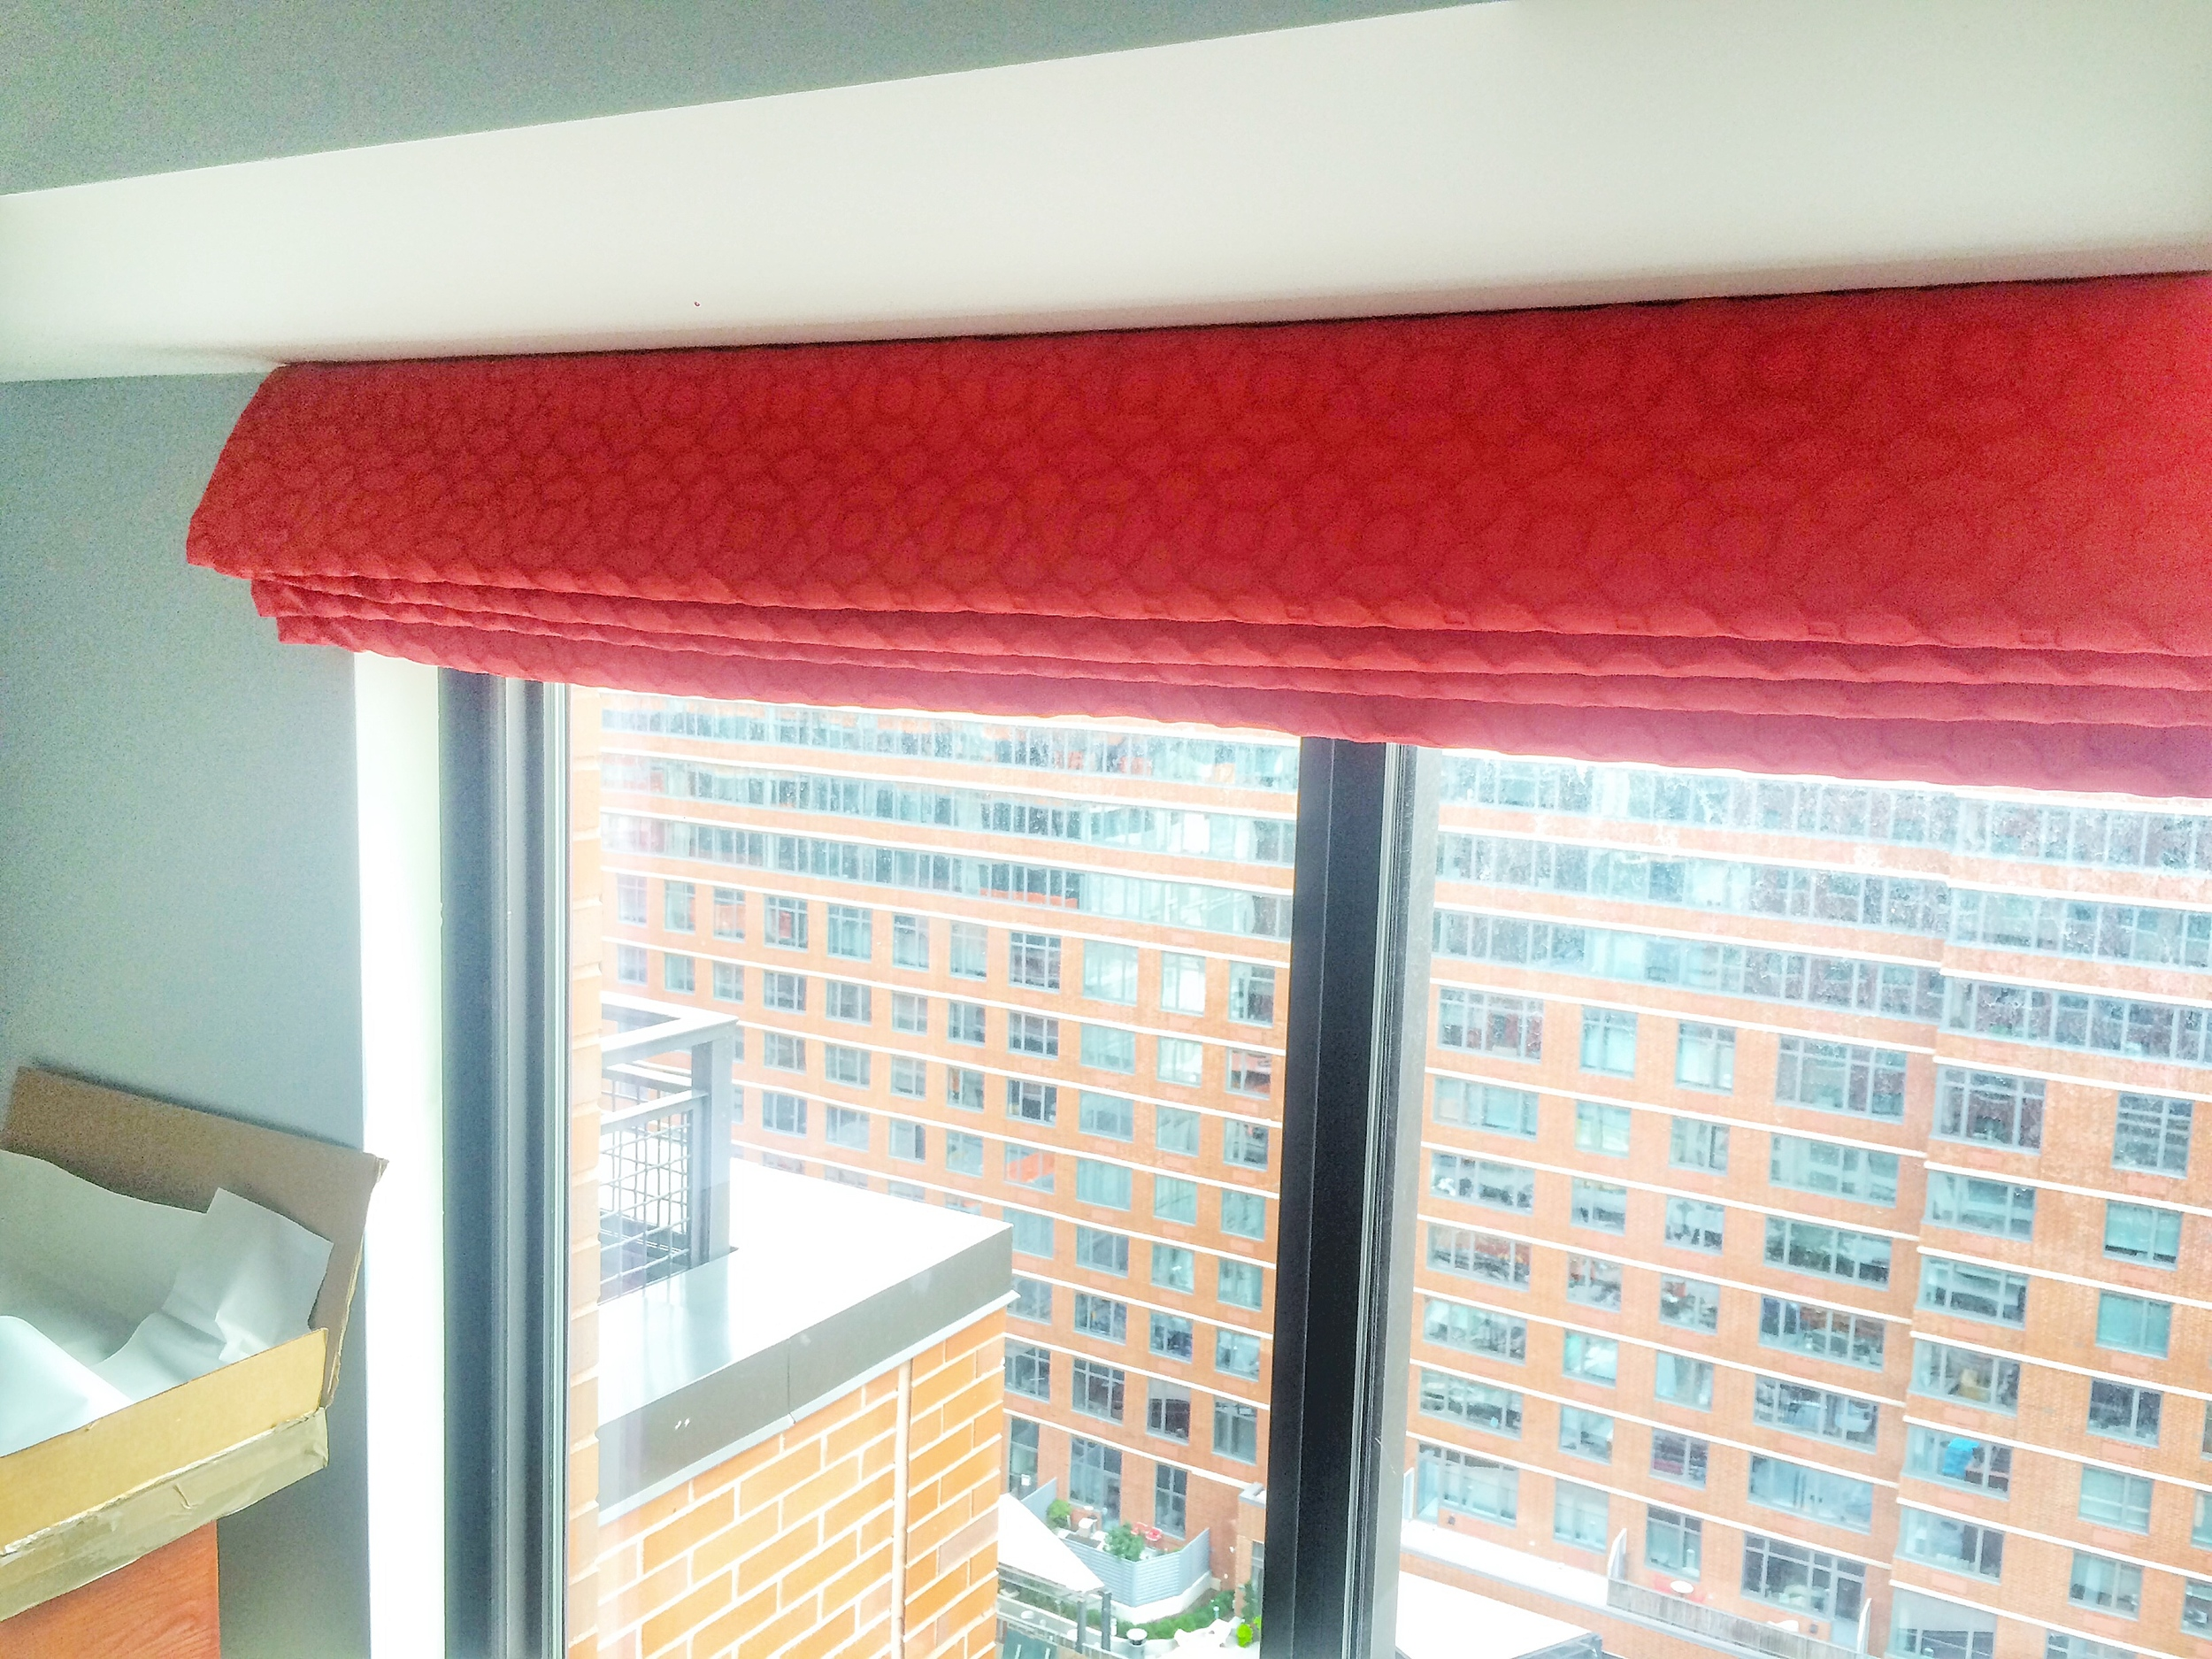 The blinds are able to be drawn up so the view is not compromised.